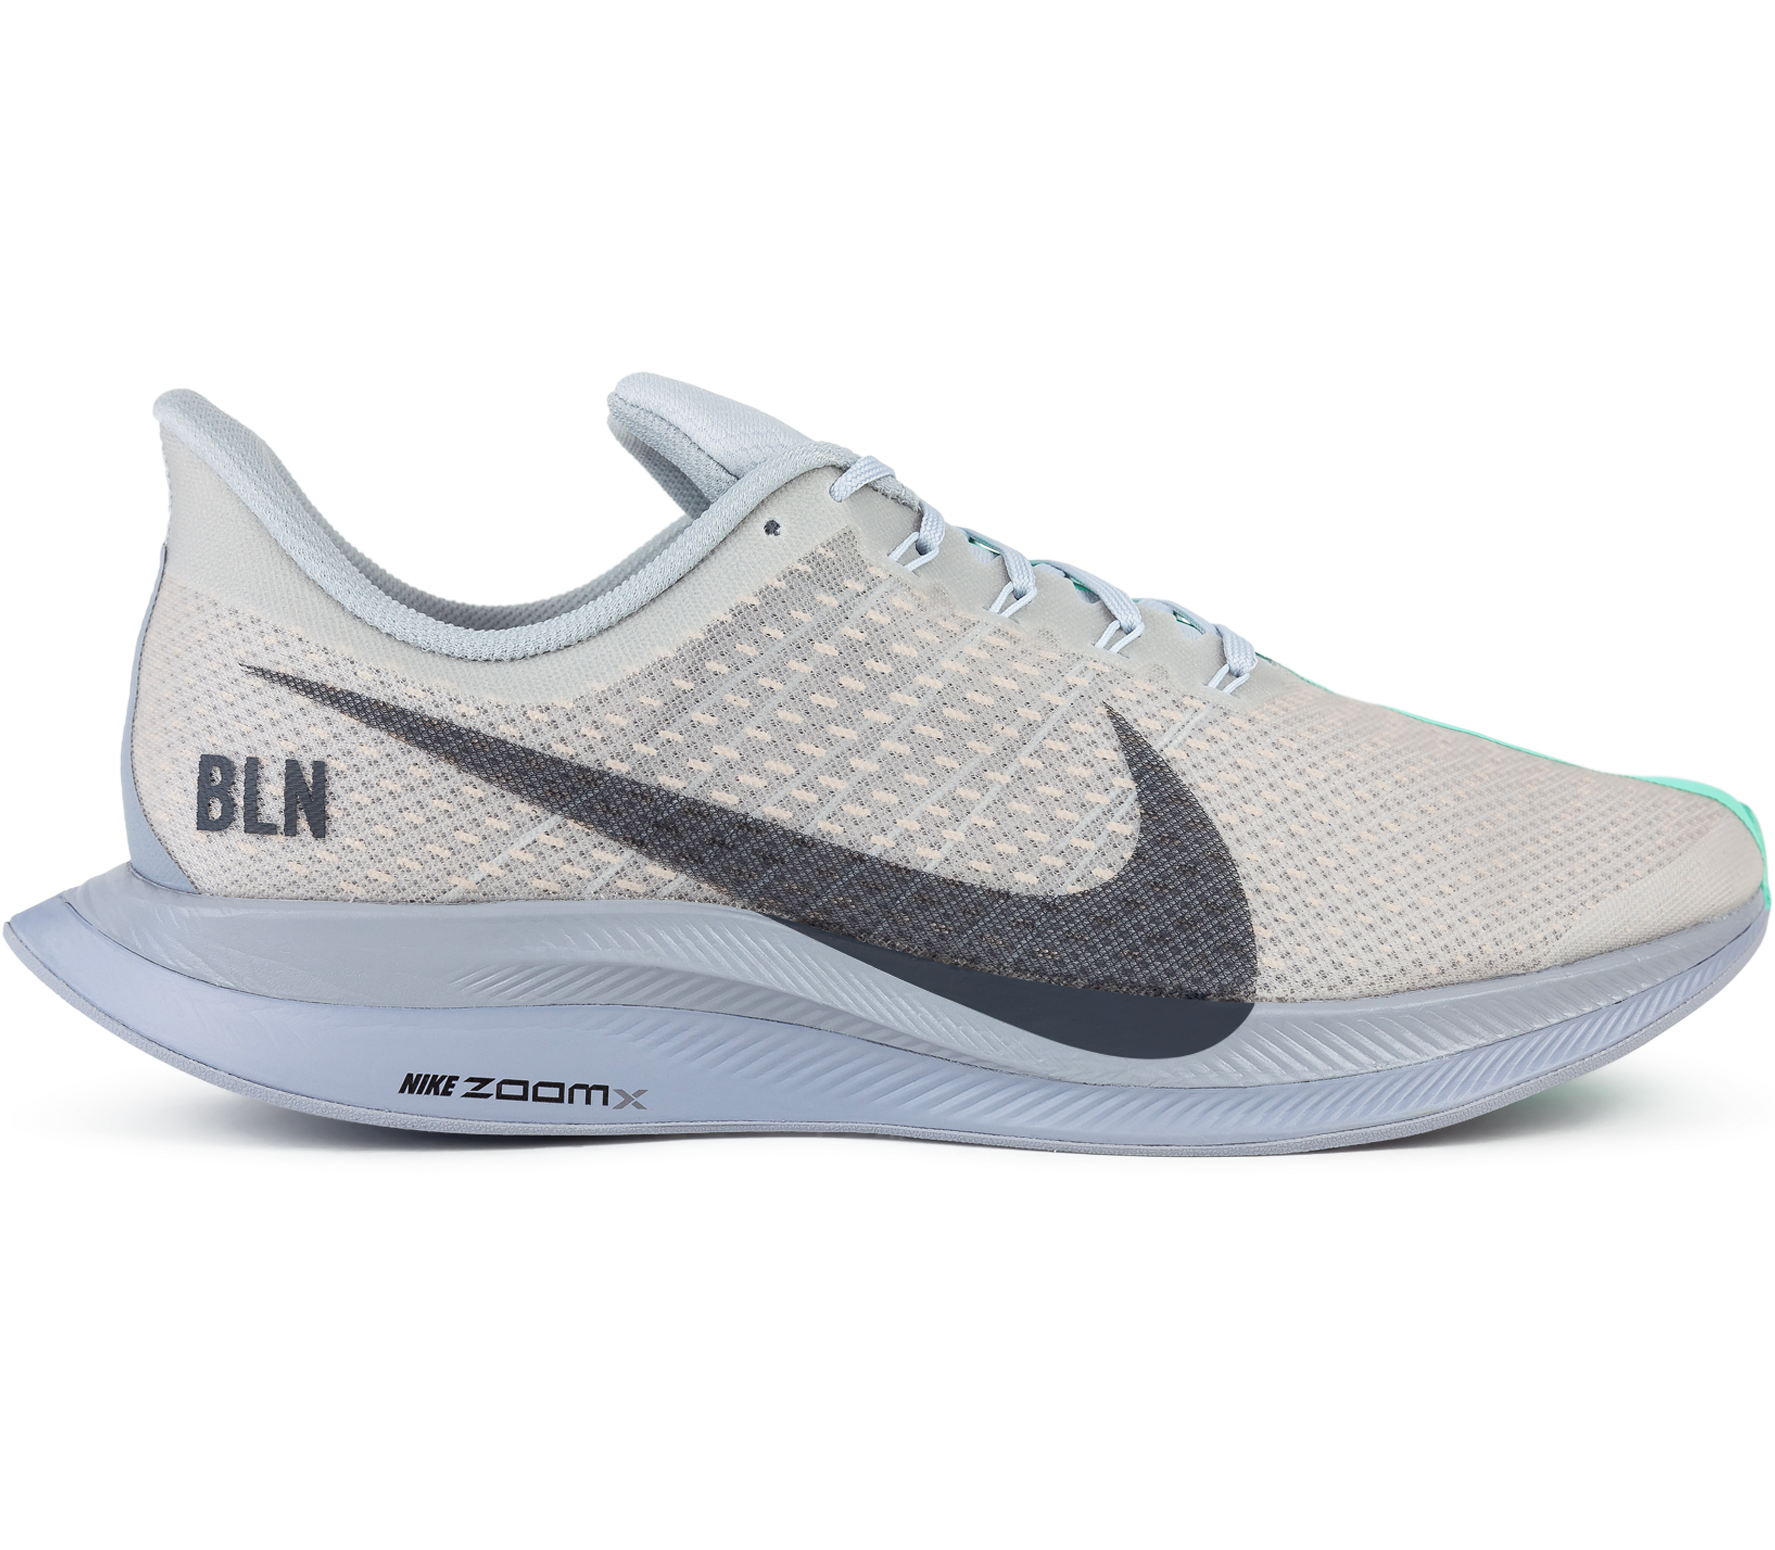 7e52bf6b3b11d Nike - Zoom Pegasus Turbo  BERLIN  men s running shoes (grey) - buy ...